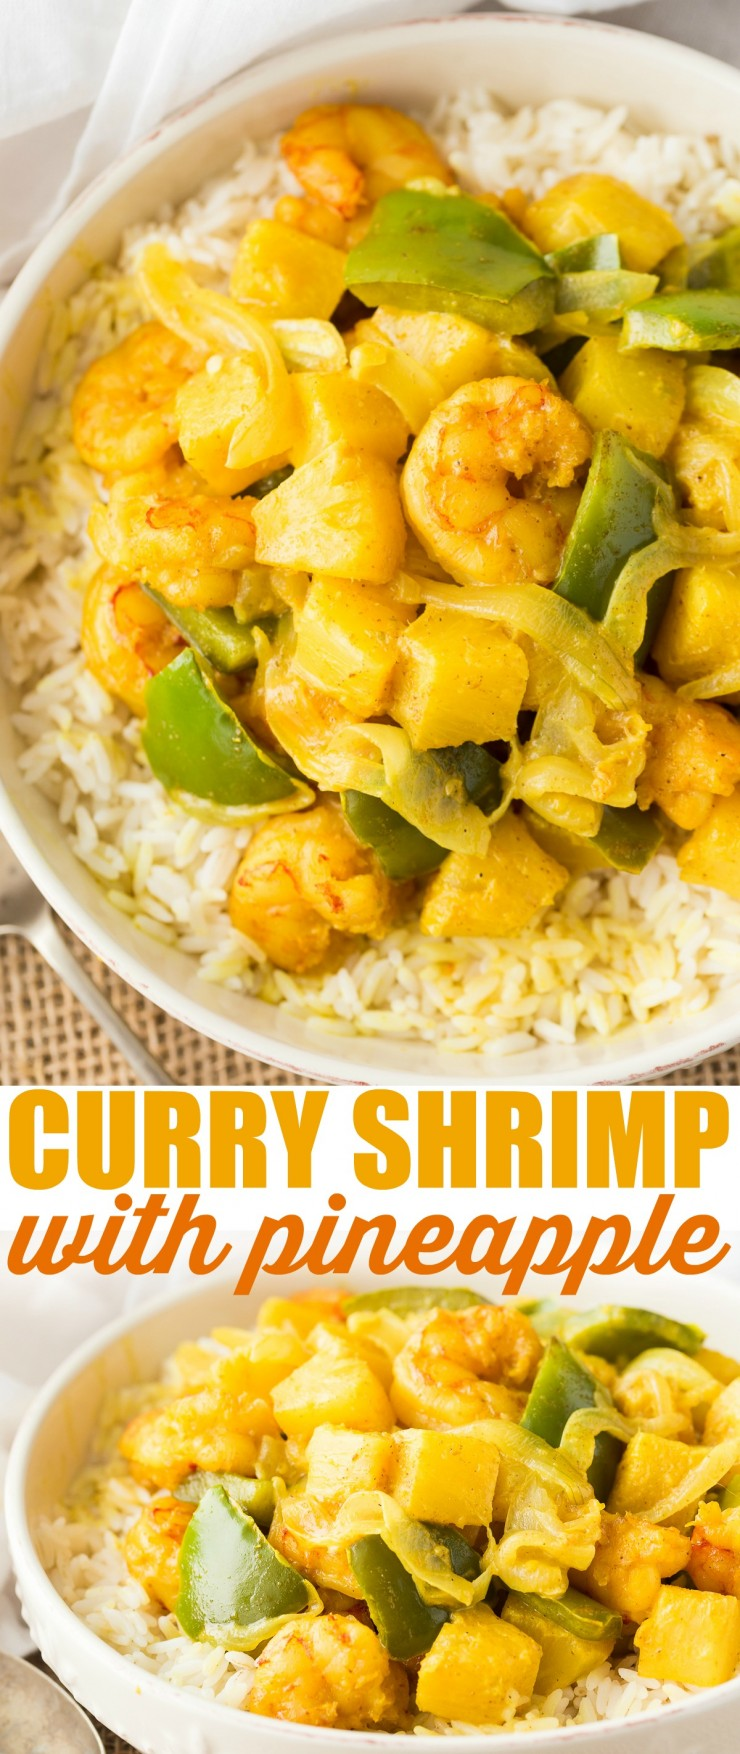 Curry Shrimp with Pineapple is a fun tropical take on curry for a real exotic flavour! This Curry Shrimp with Pineapple is perfect for any time of year and it has serious flavour and a wonderful creamy texture. Perfect for family dinner or serving guests, this is a no-fuss meal that can be whipped up quickly.